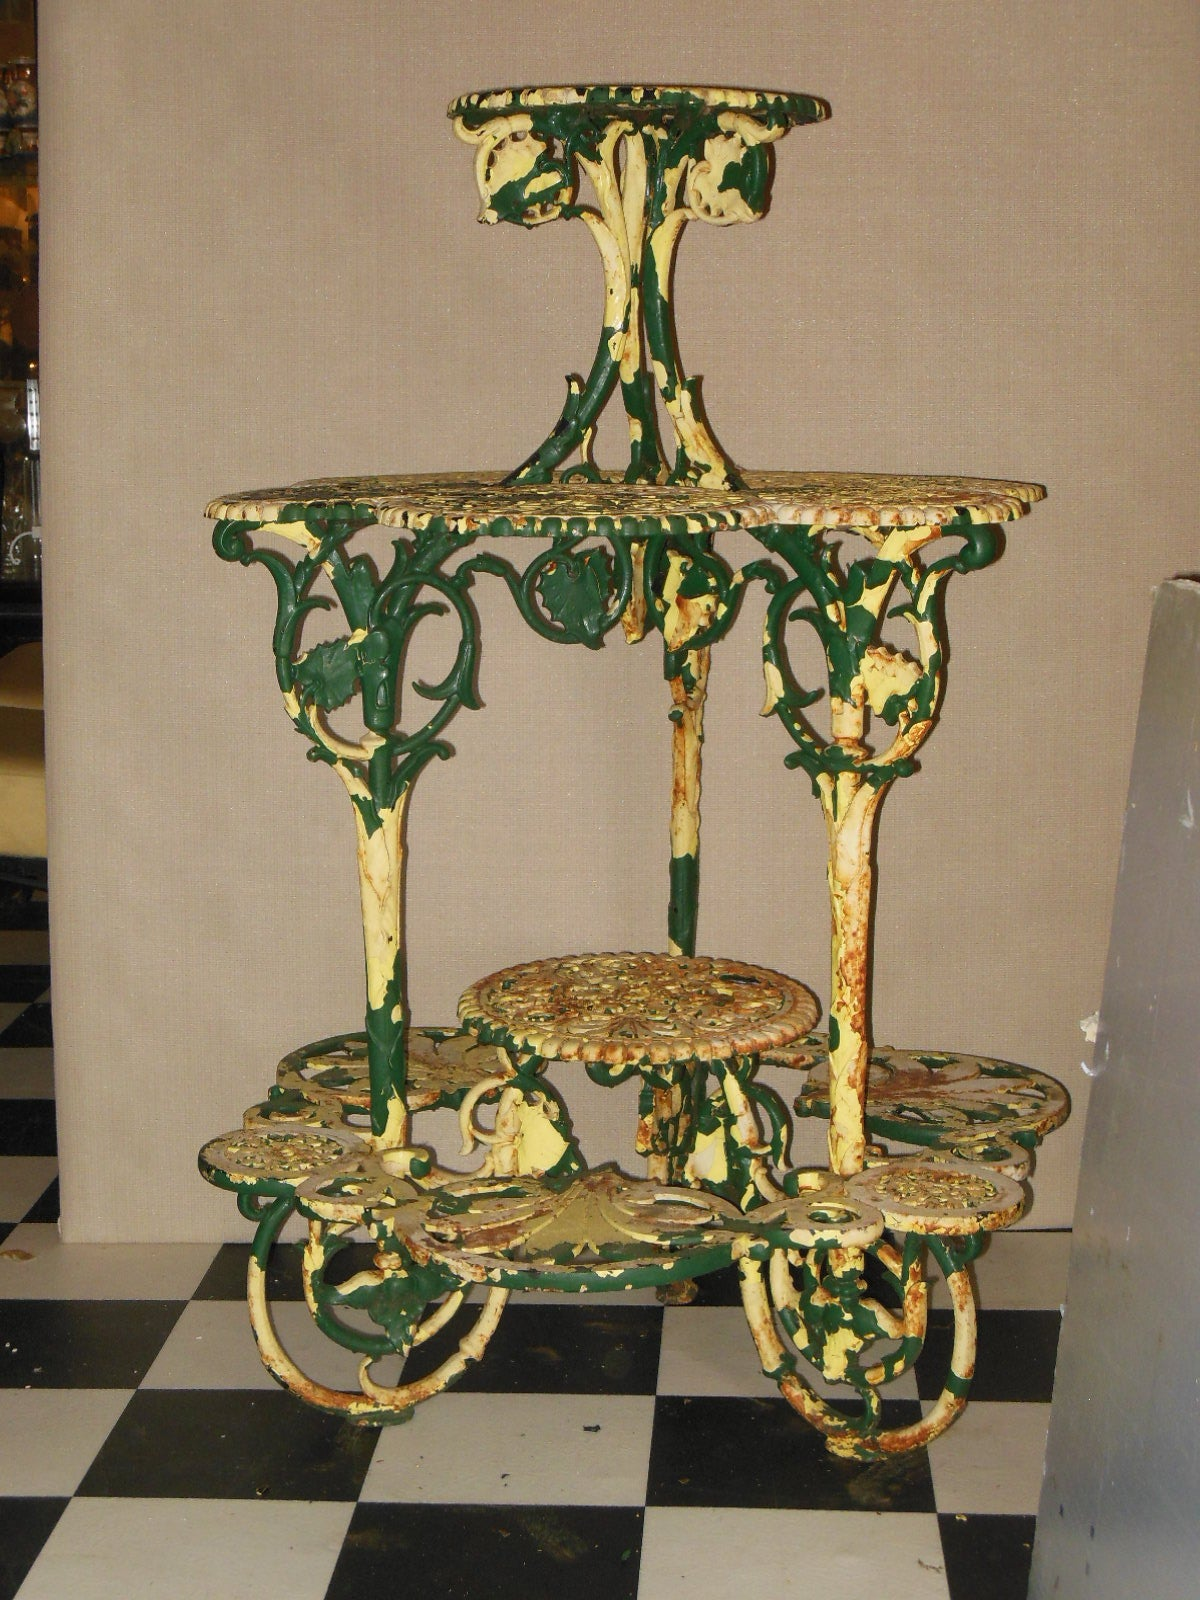 Green Metal Plant Stand Antique Plant Stand Cast Iron Quotcoalbrookdale Quot For Sale At